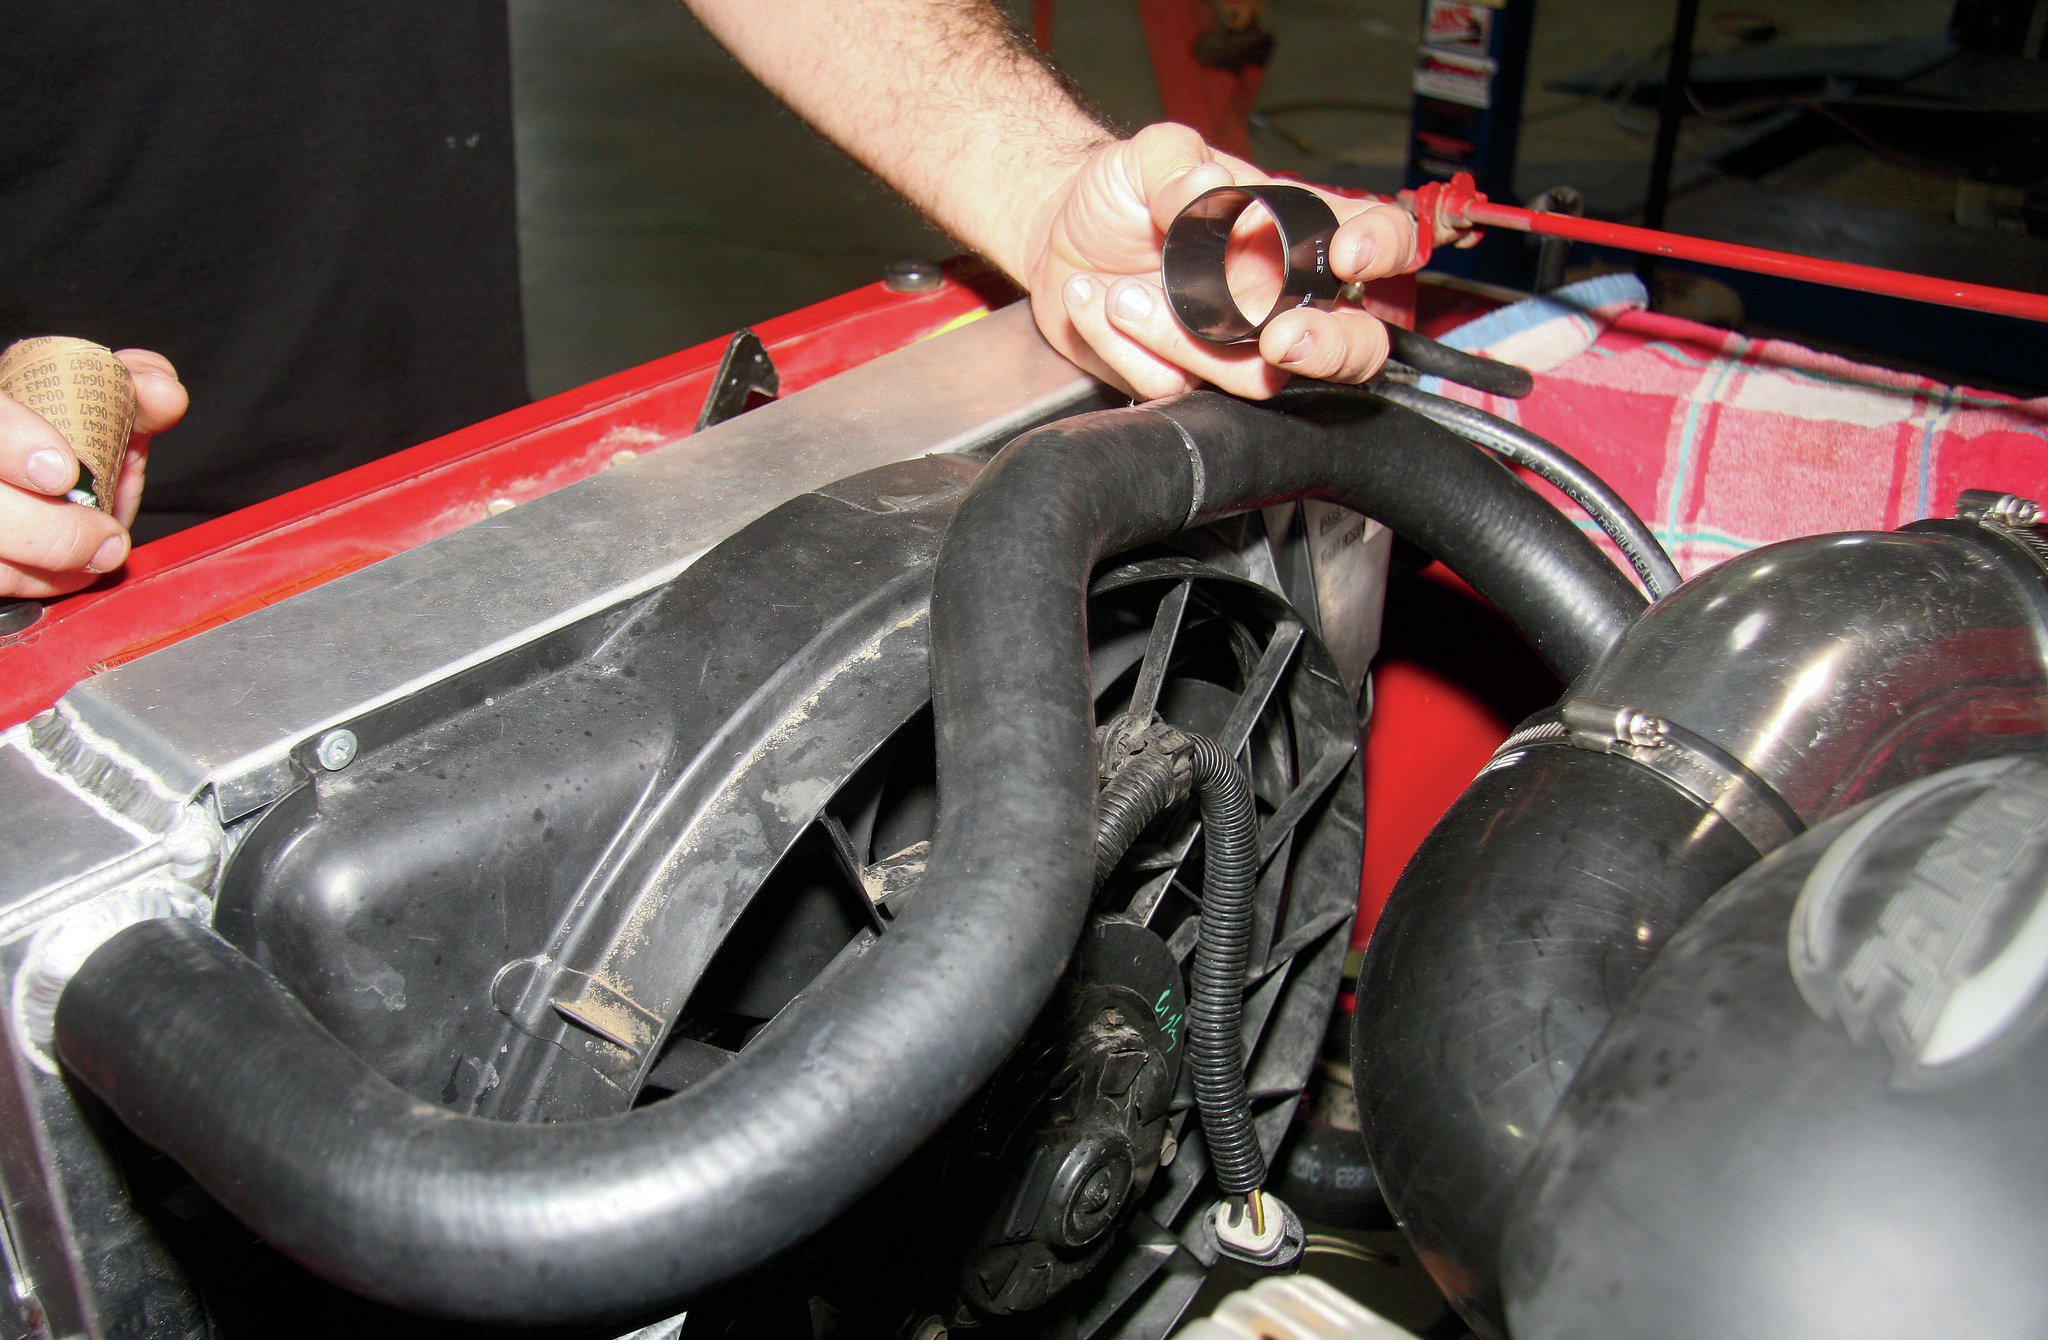 The upper hose is one used on a 5.3L Chevy truck that was cut and shortened in the middle. The two pieces were reliably and cleanly joined using a heat-shrink hose clamp. An electric fan from a Ford Taurus application was used and fits the surface area of the radiator well.